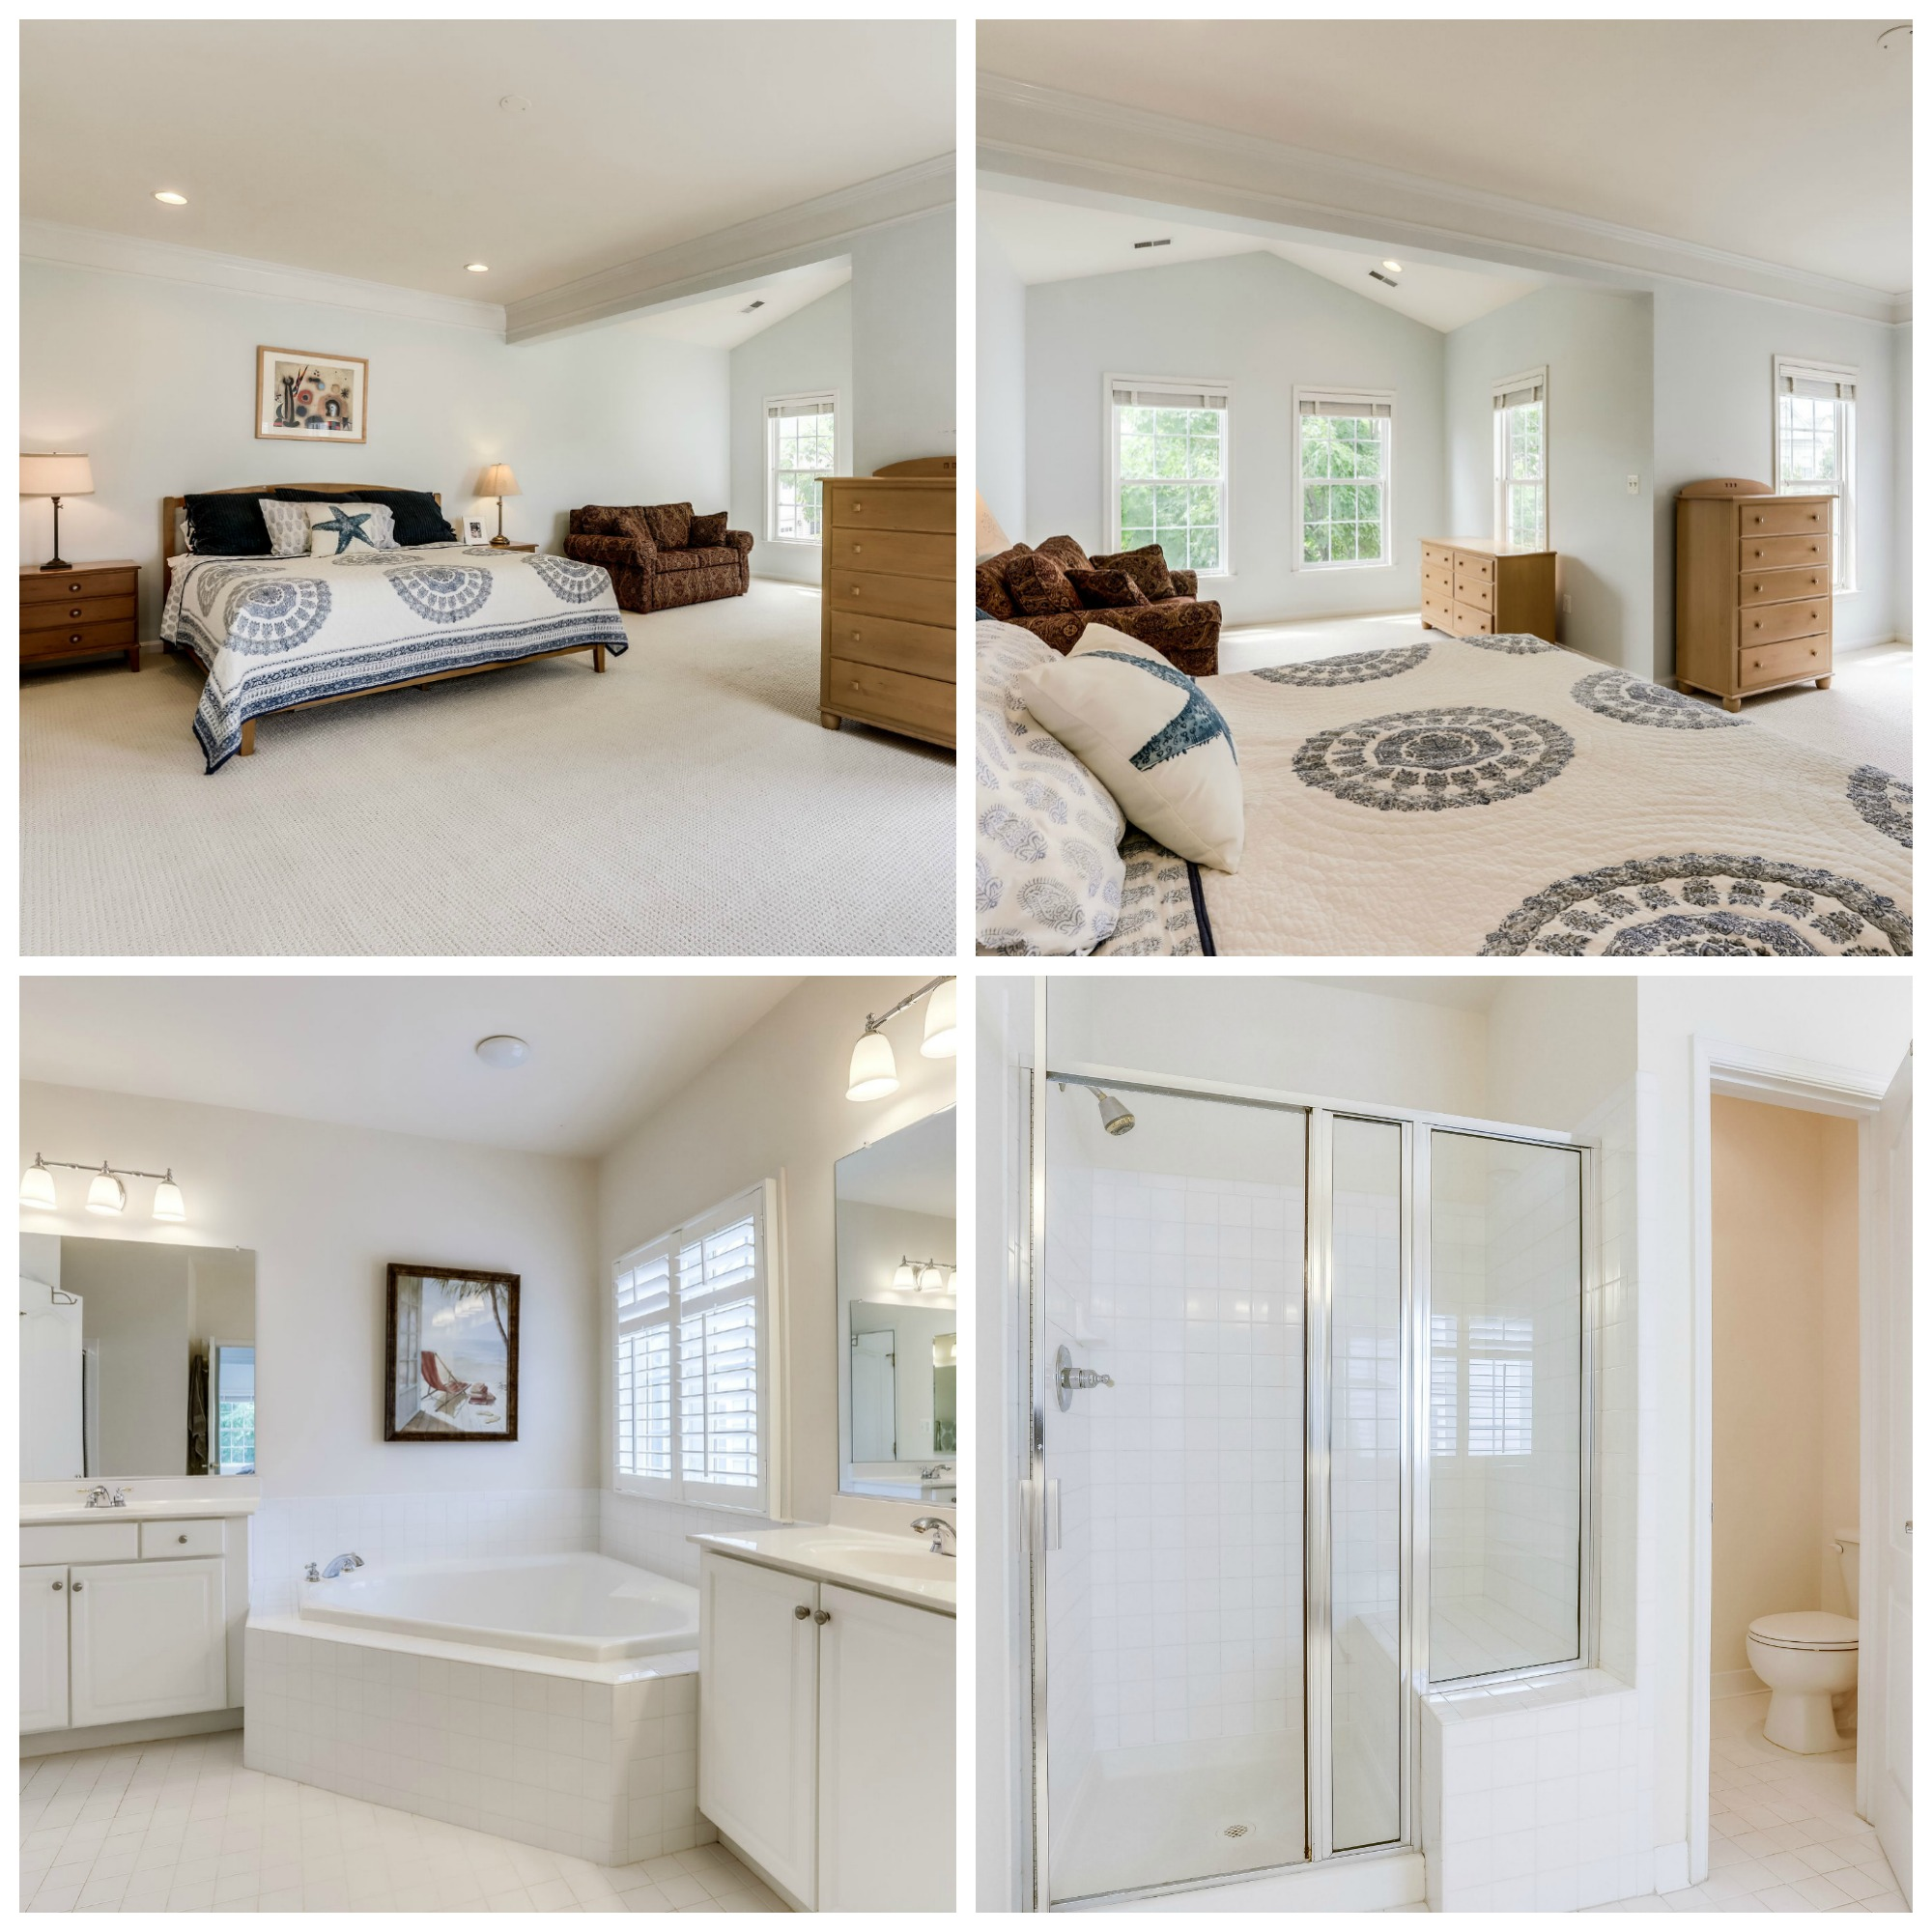 42914 Park Brooke Ct, Broadlands- Master Suite